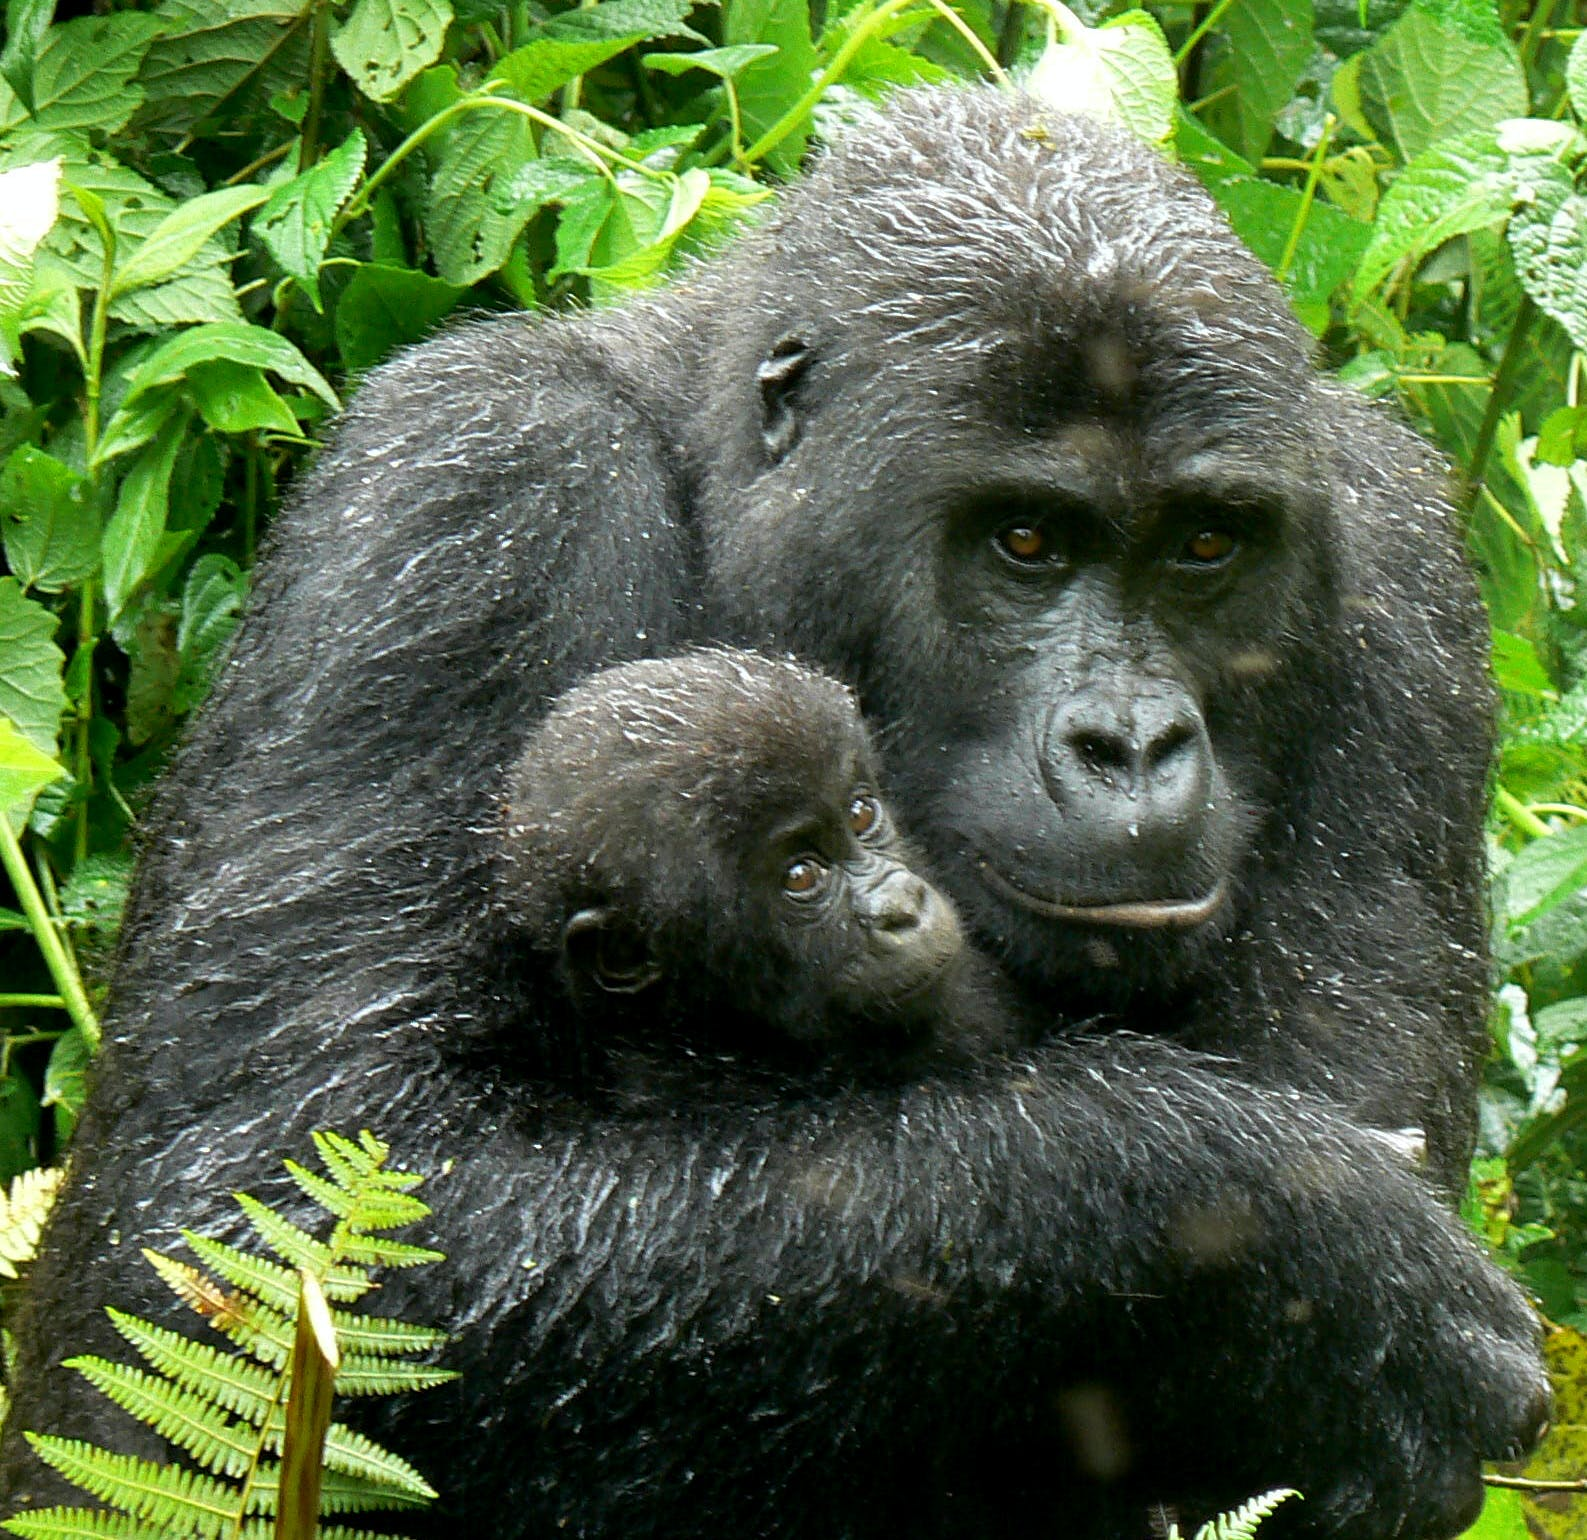 Cellphones Are Endangering Gorillas But Recycling Old Ones Can Help News Eco Business Asia Pacific